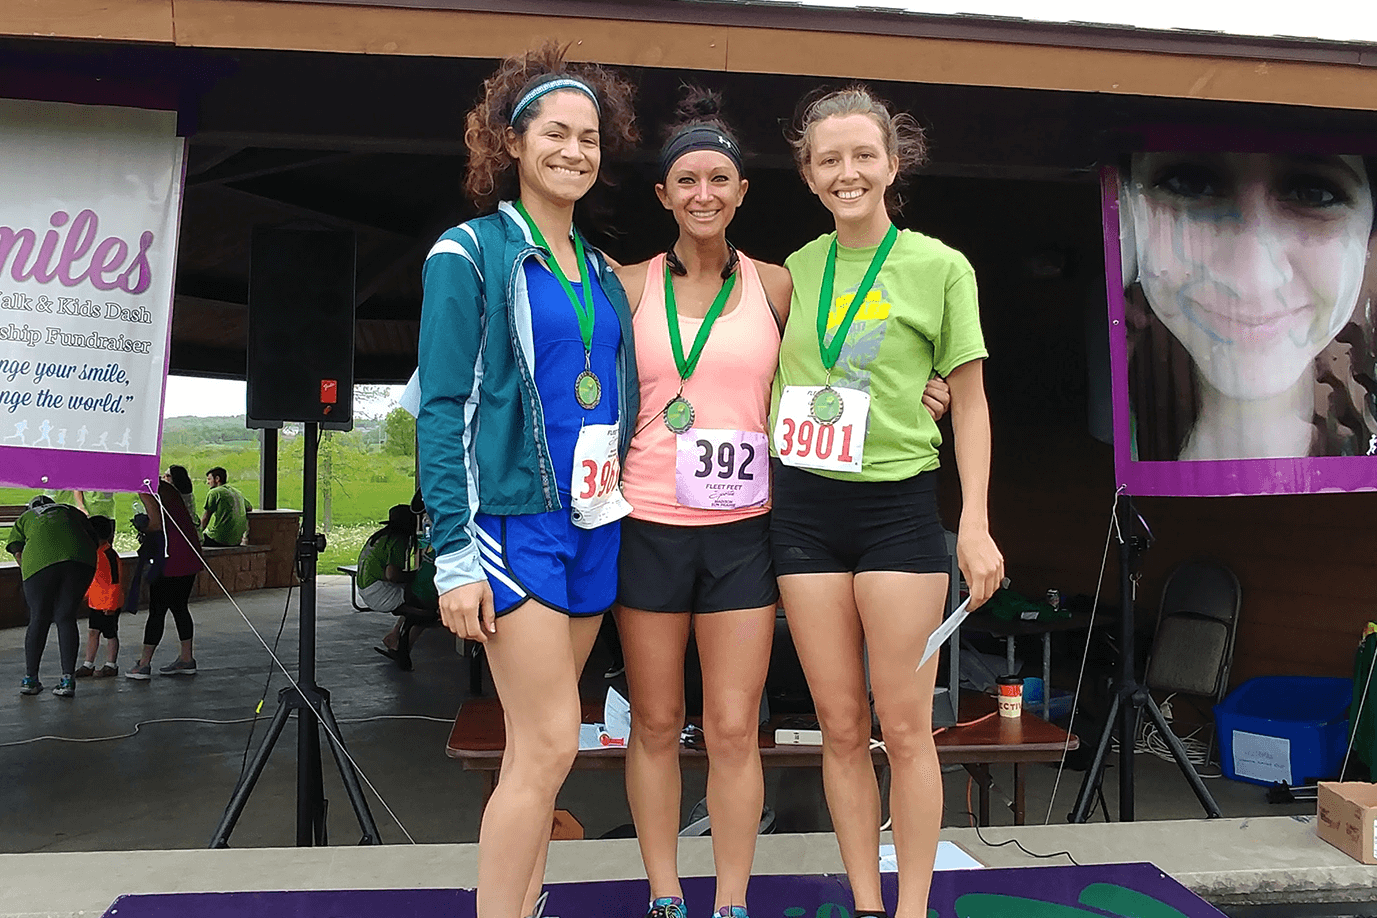 2017 Female winners from left to right: Bethany Phillips (3rd Place), Jenna Edwards (2nd place), Cynthia Hovey (1st place)